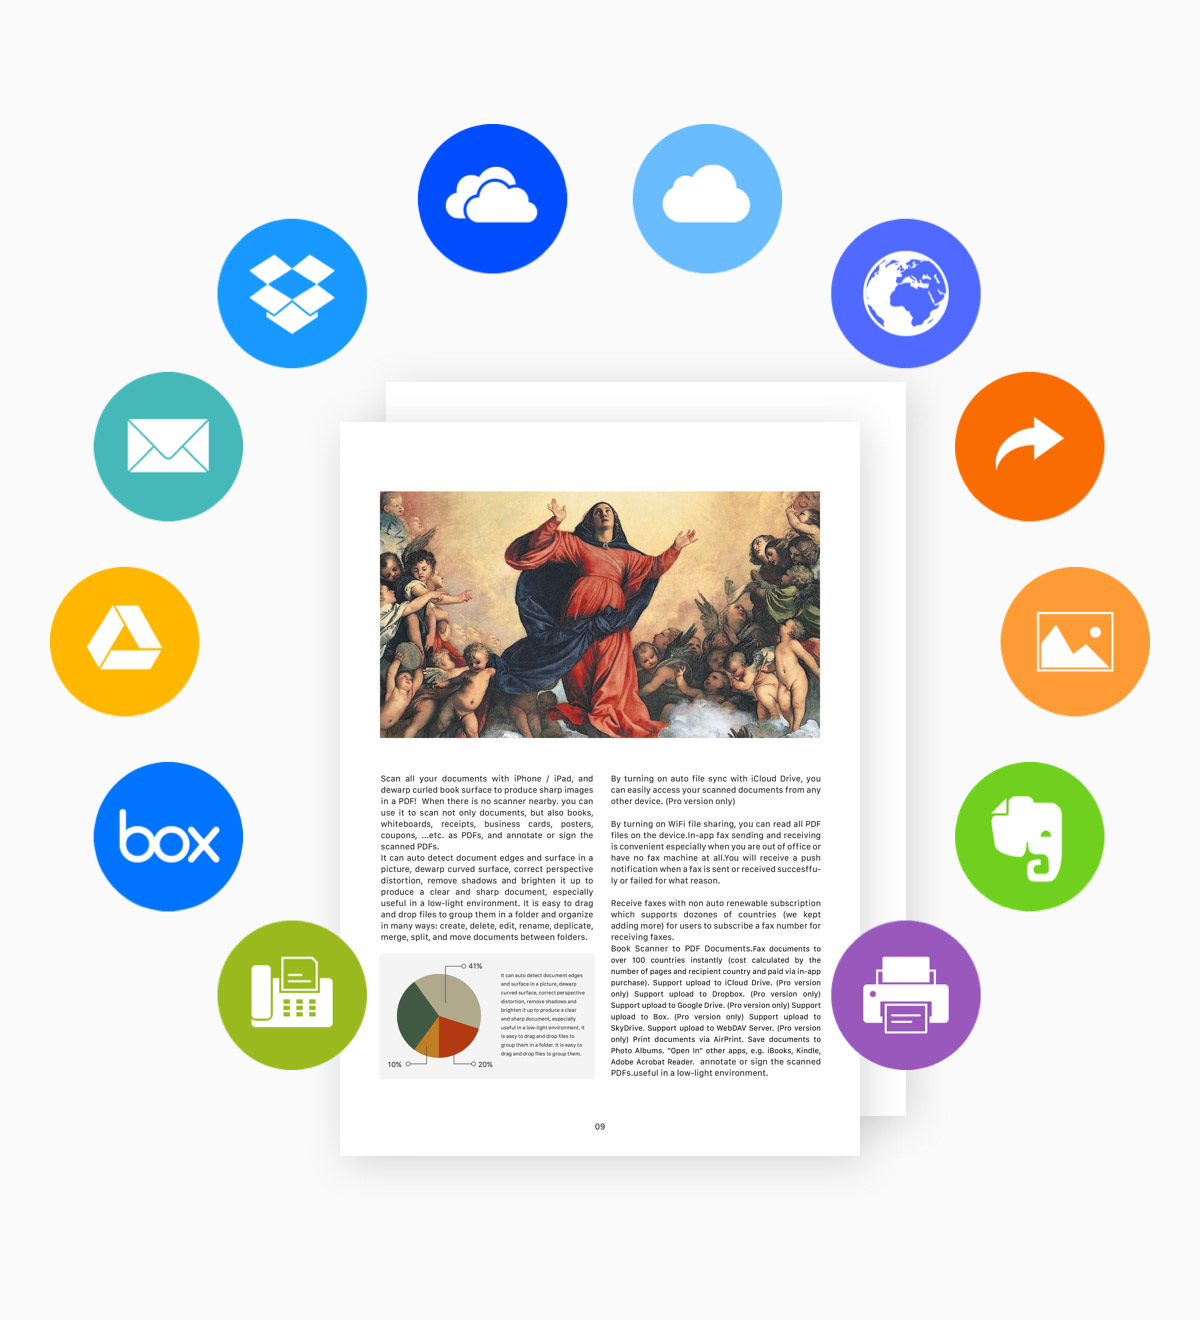 Share scans and upload pdf to cloud